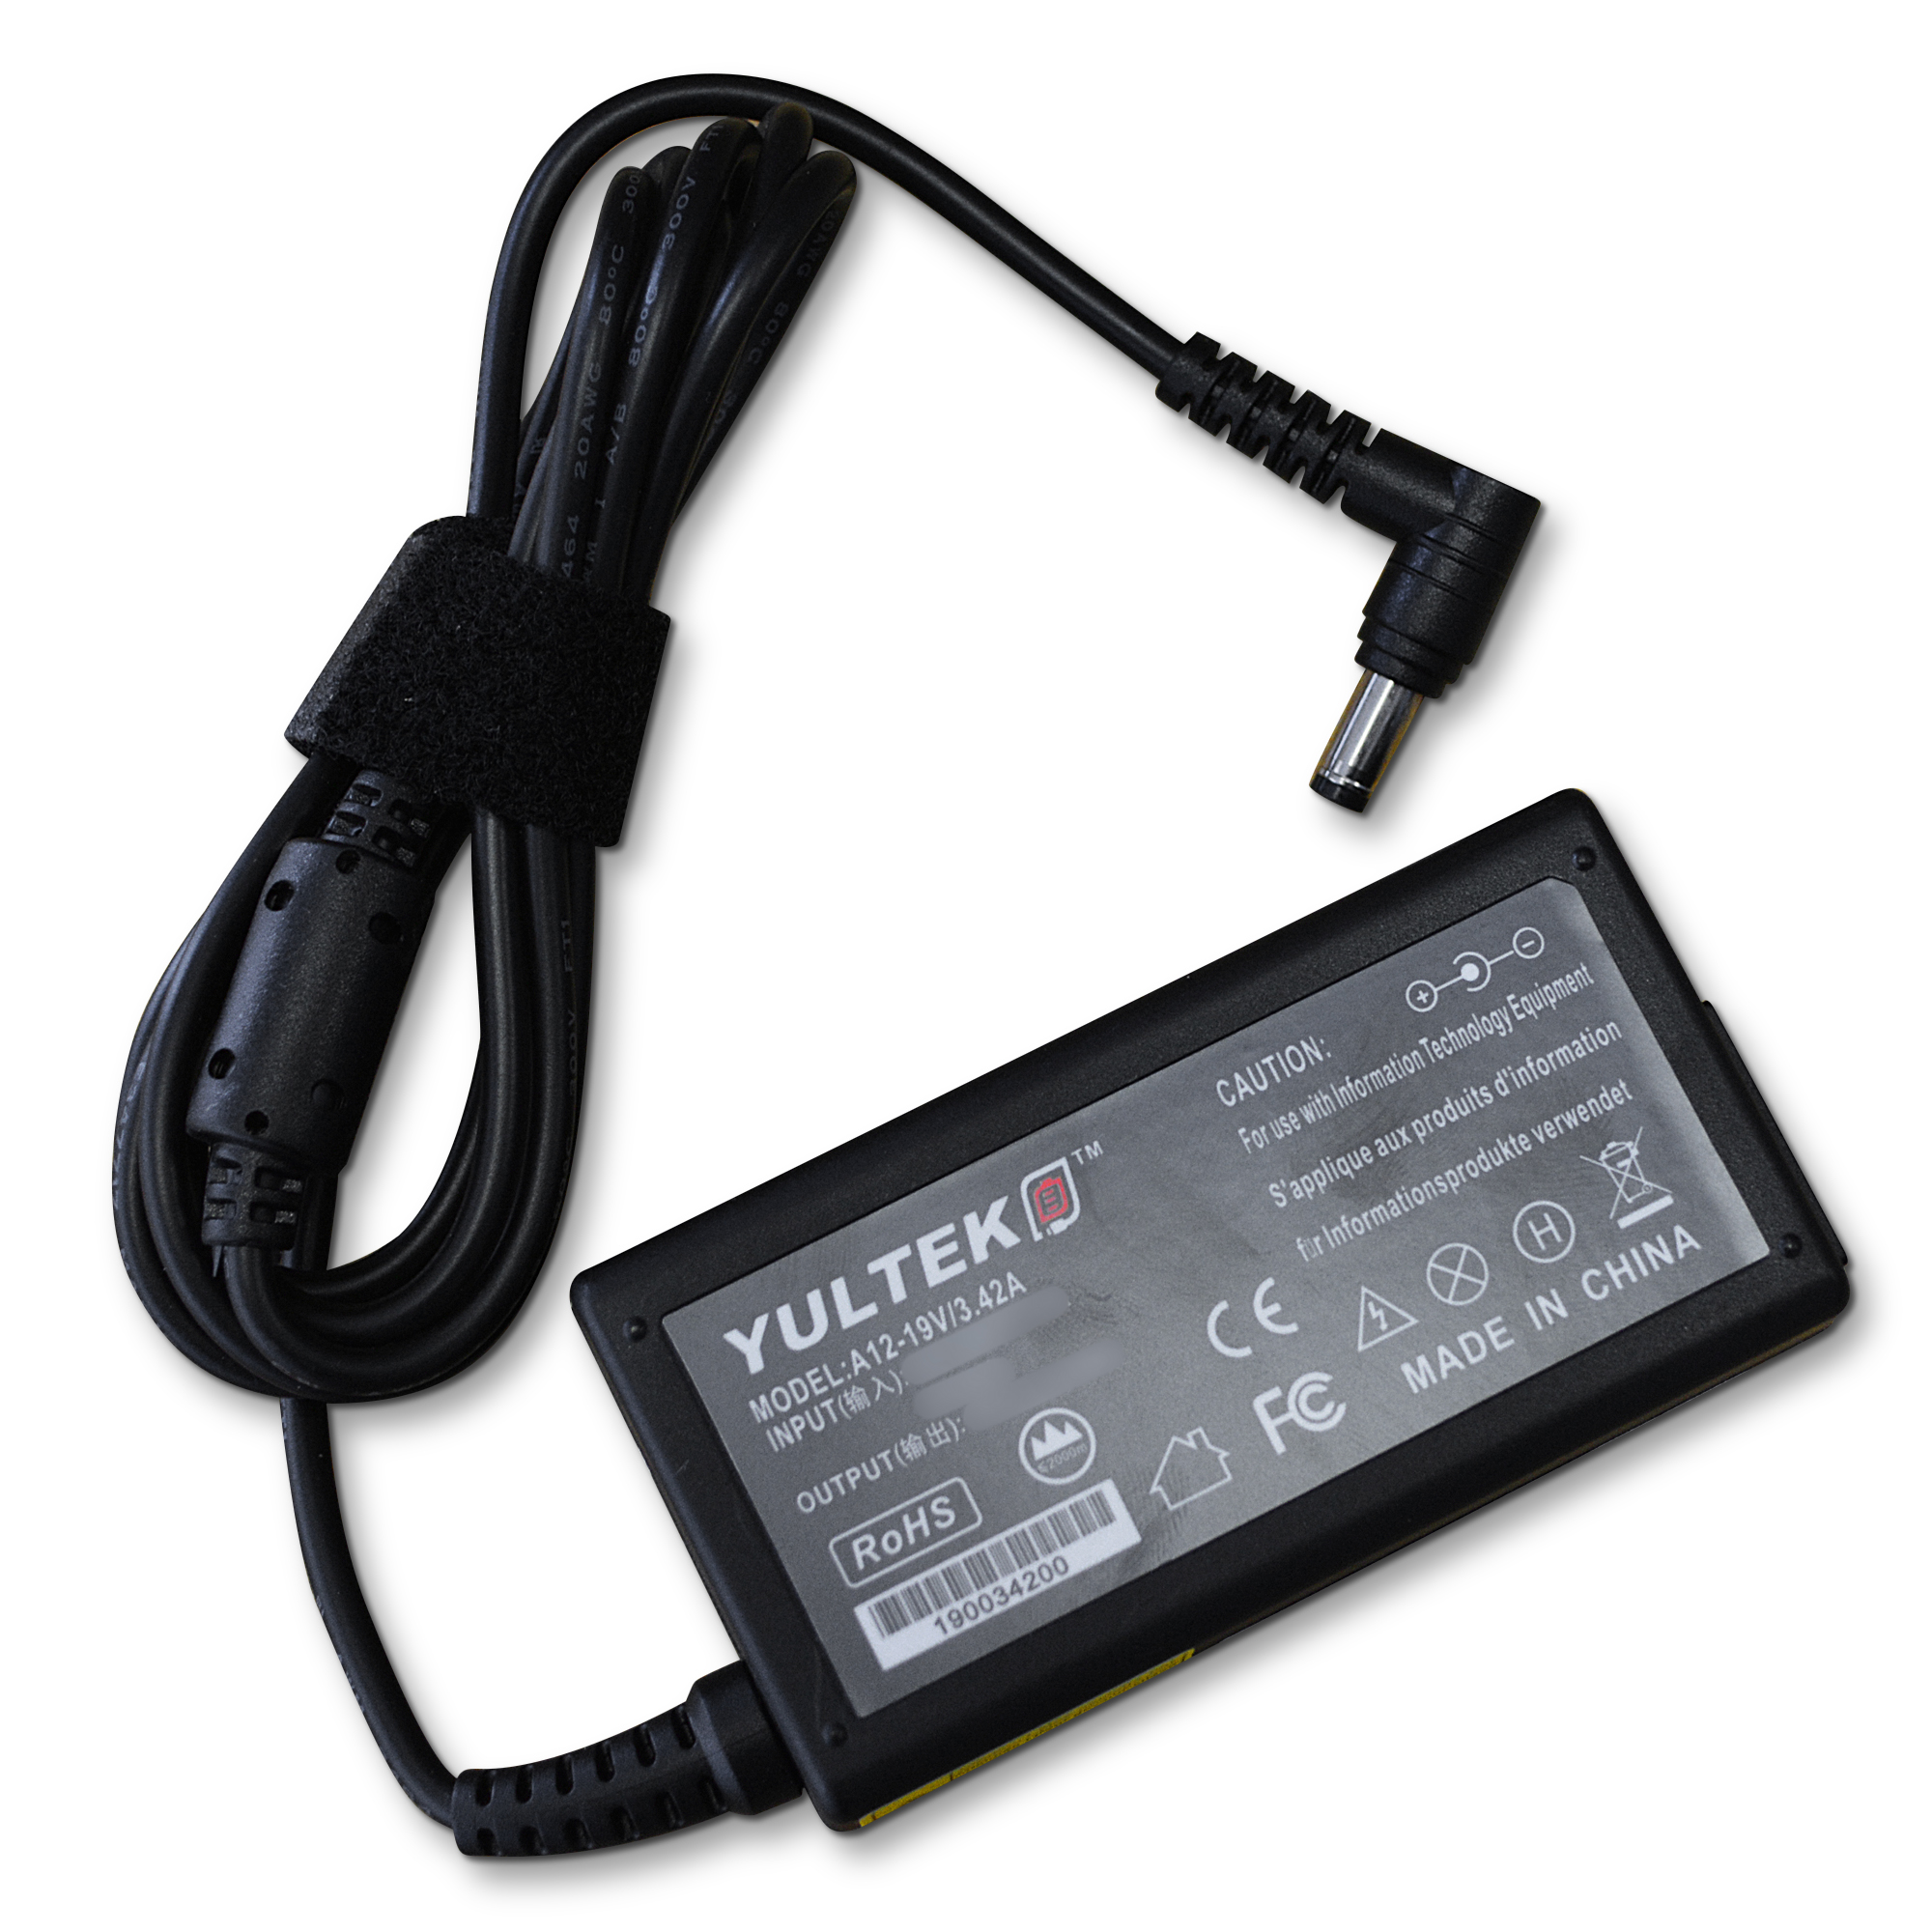 Fujitsu-Siemens Part Number UWL:76-01B651-5A Laptop Charger